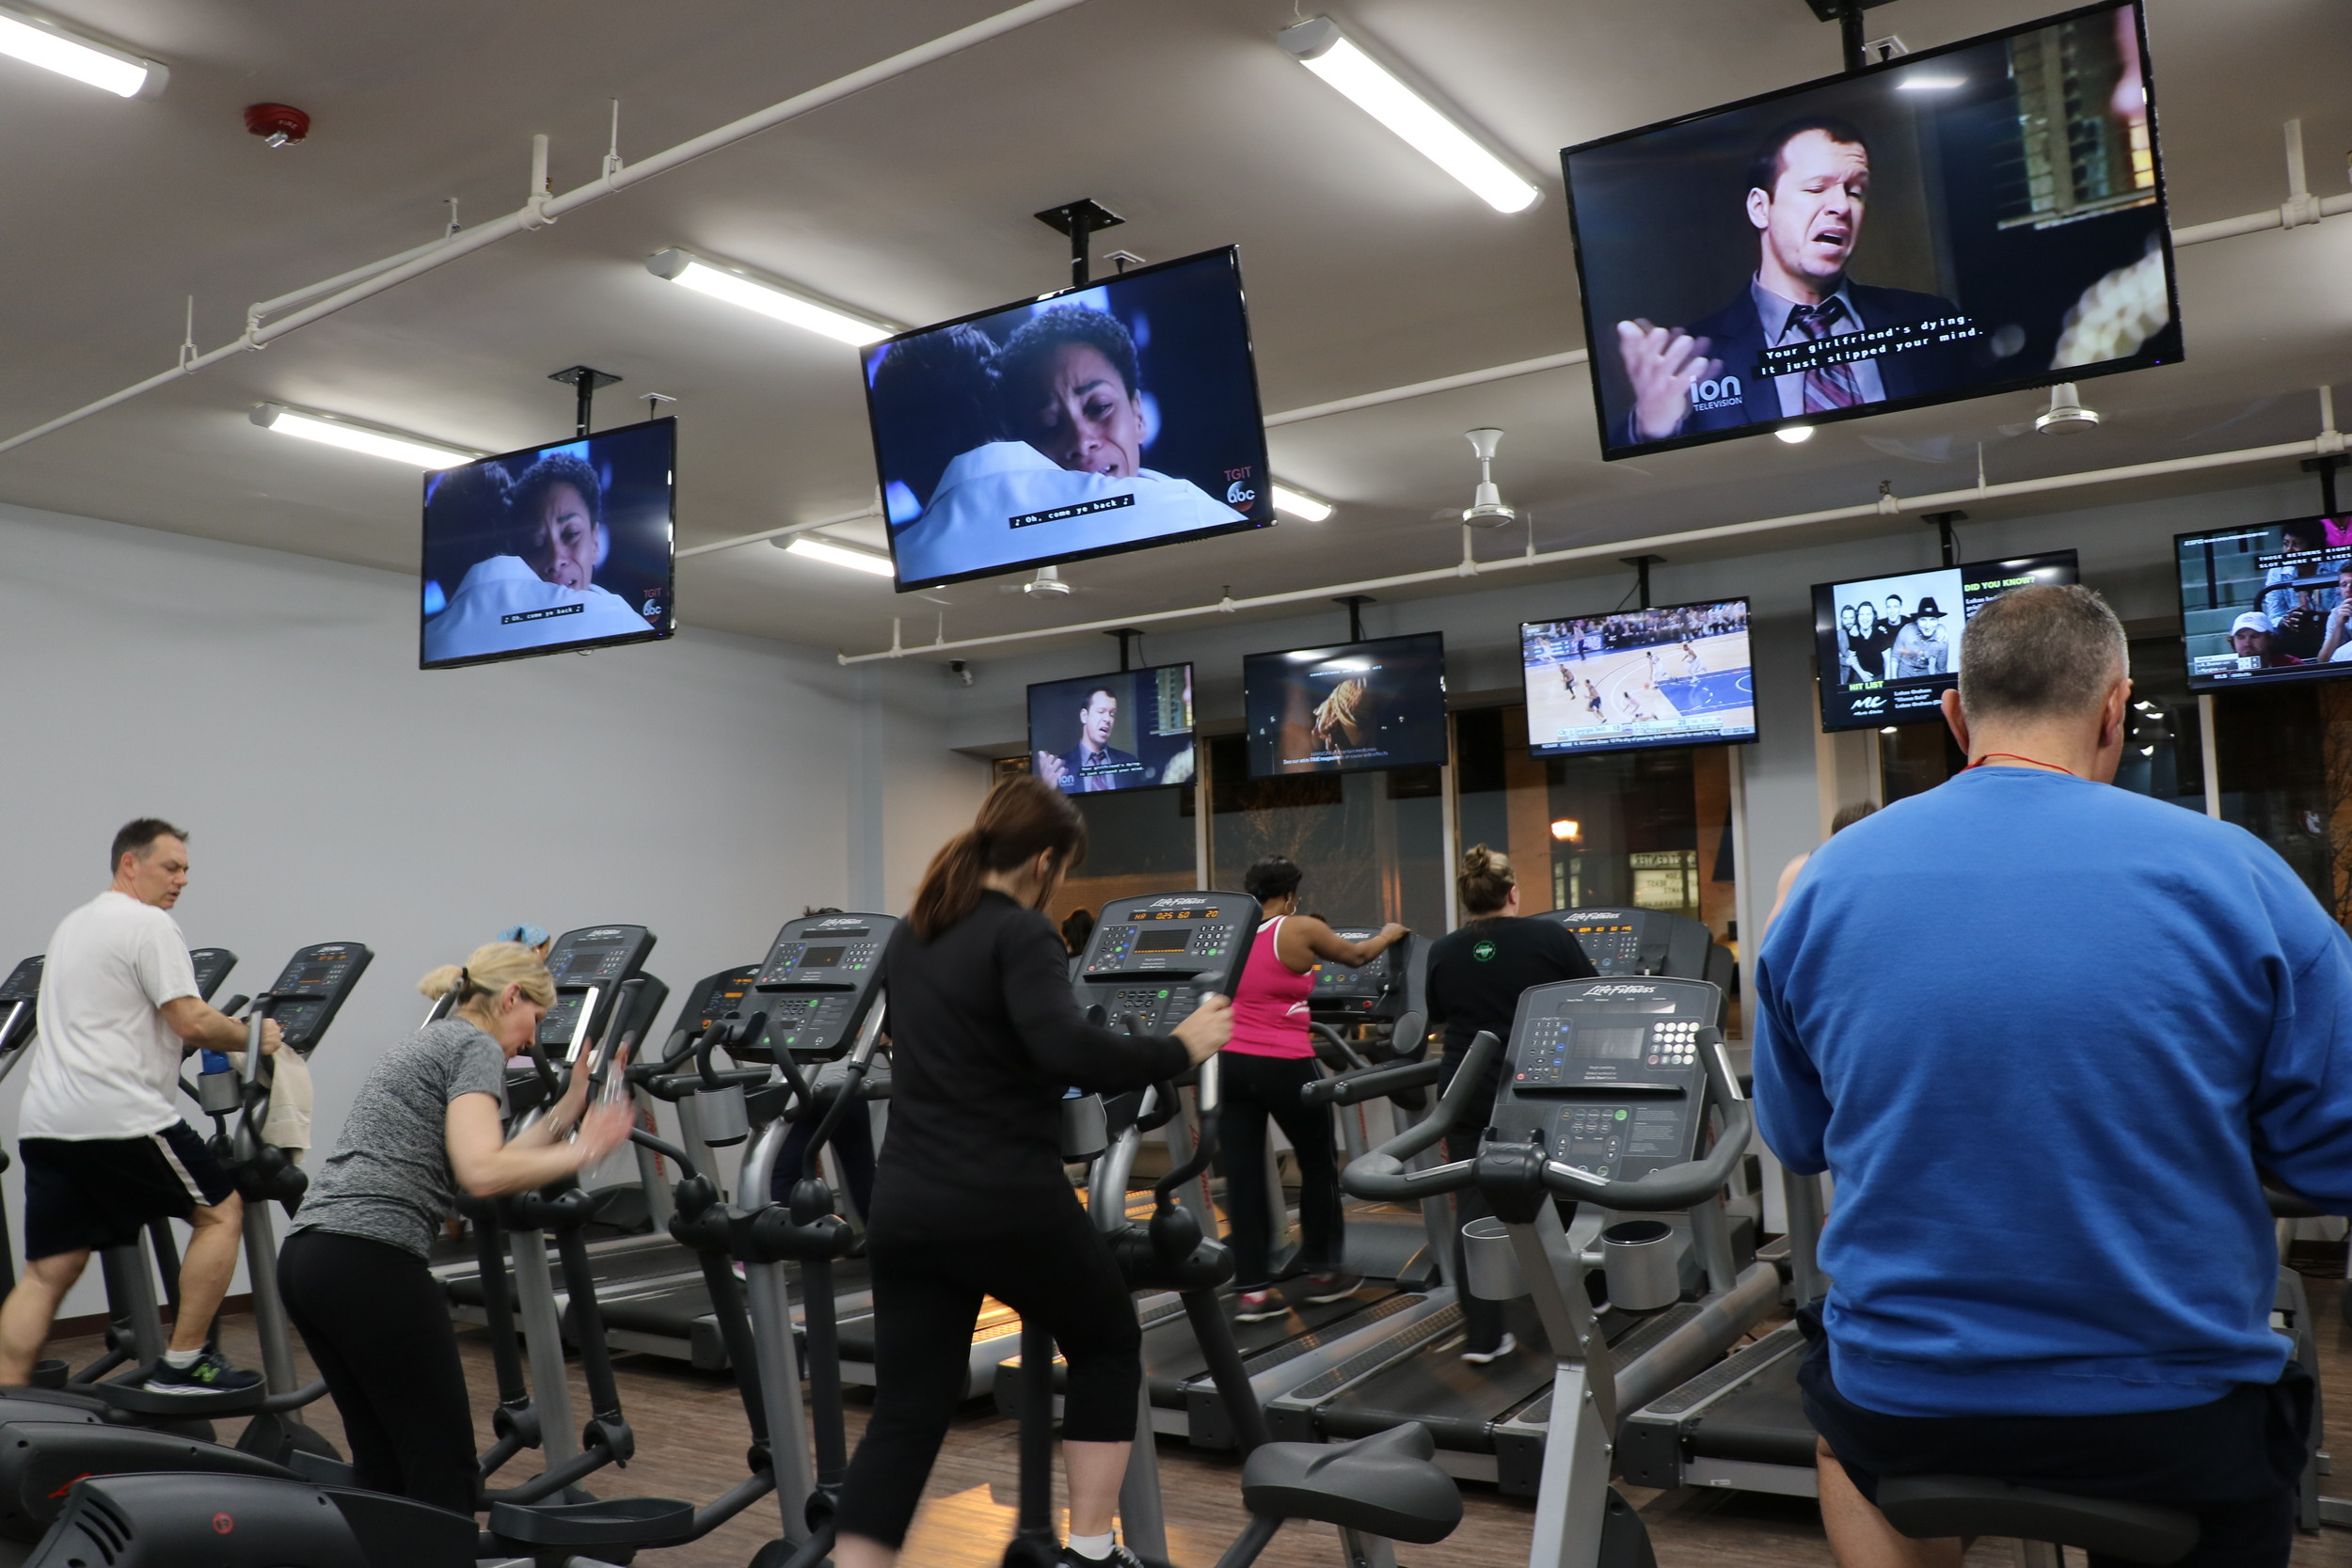 Fitness 19 boasts over 100 exercise machines, and has group classes starting as early as 5:30 a.m.